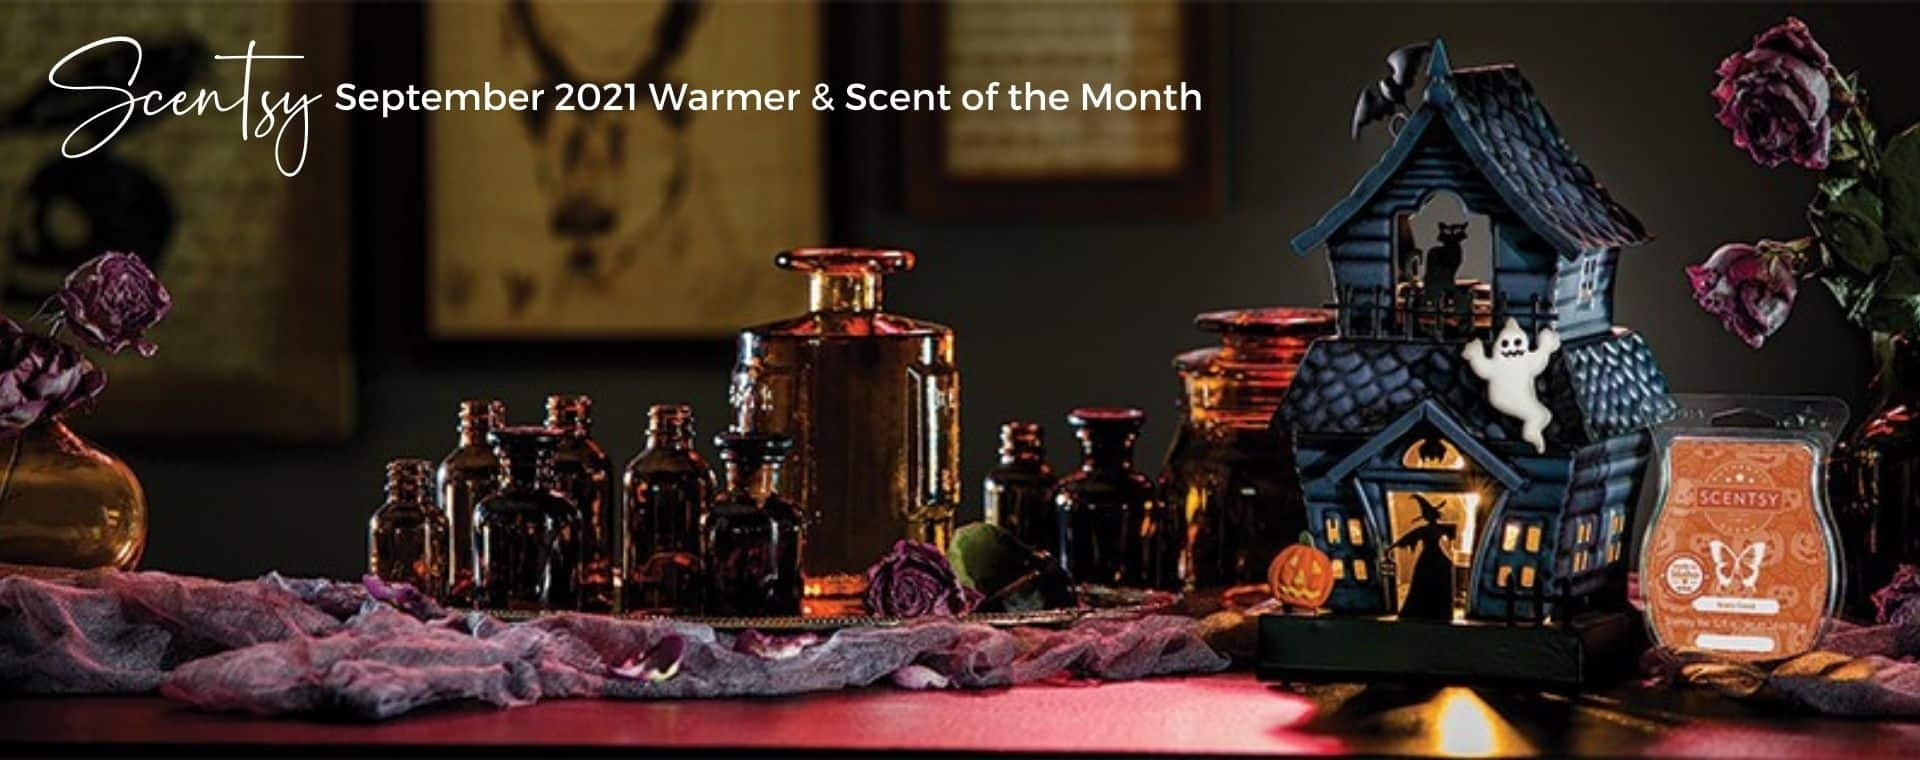 September 2021 Warmer Scent of the Month 1